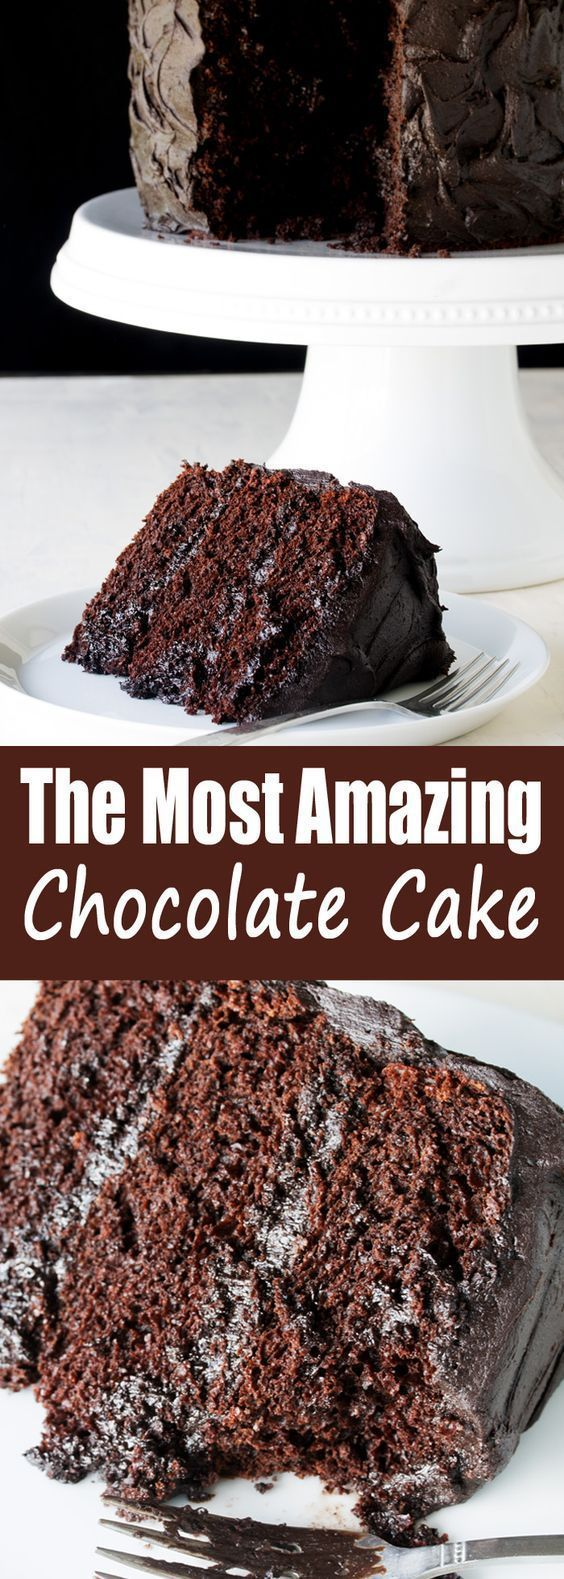 The Most Amazing Chocolate Cake is here. I call this my Matilda Cake because I swear it's just as good as the cake that Bruce Bogtrotter ate in Matilda. Moist, chocolatey perfection. This is the